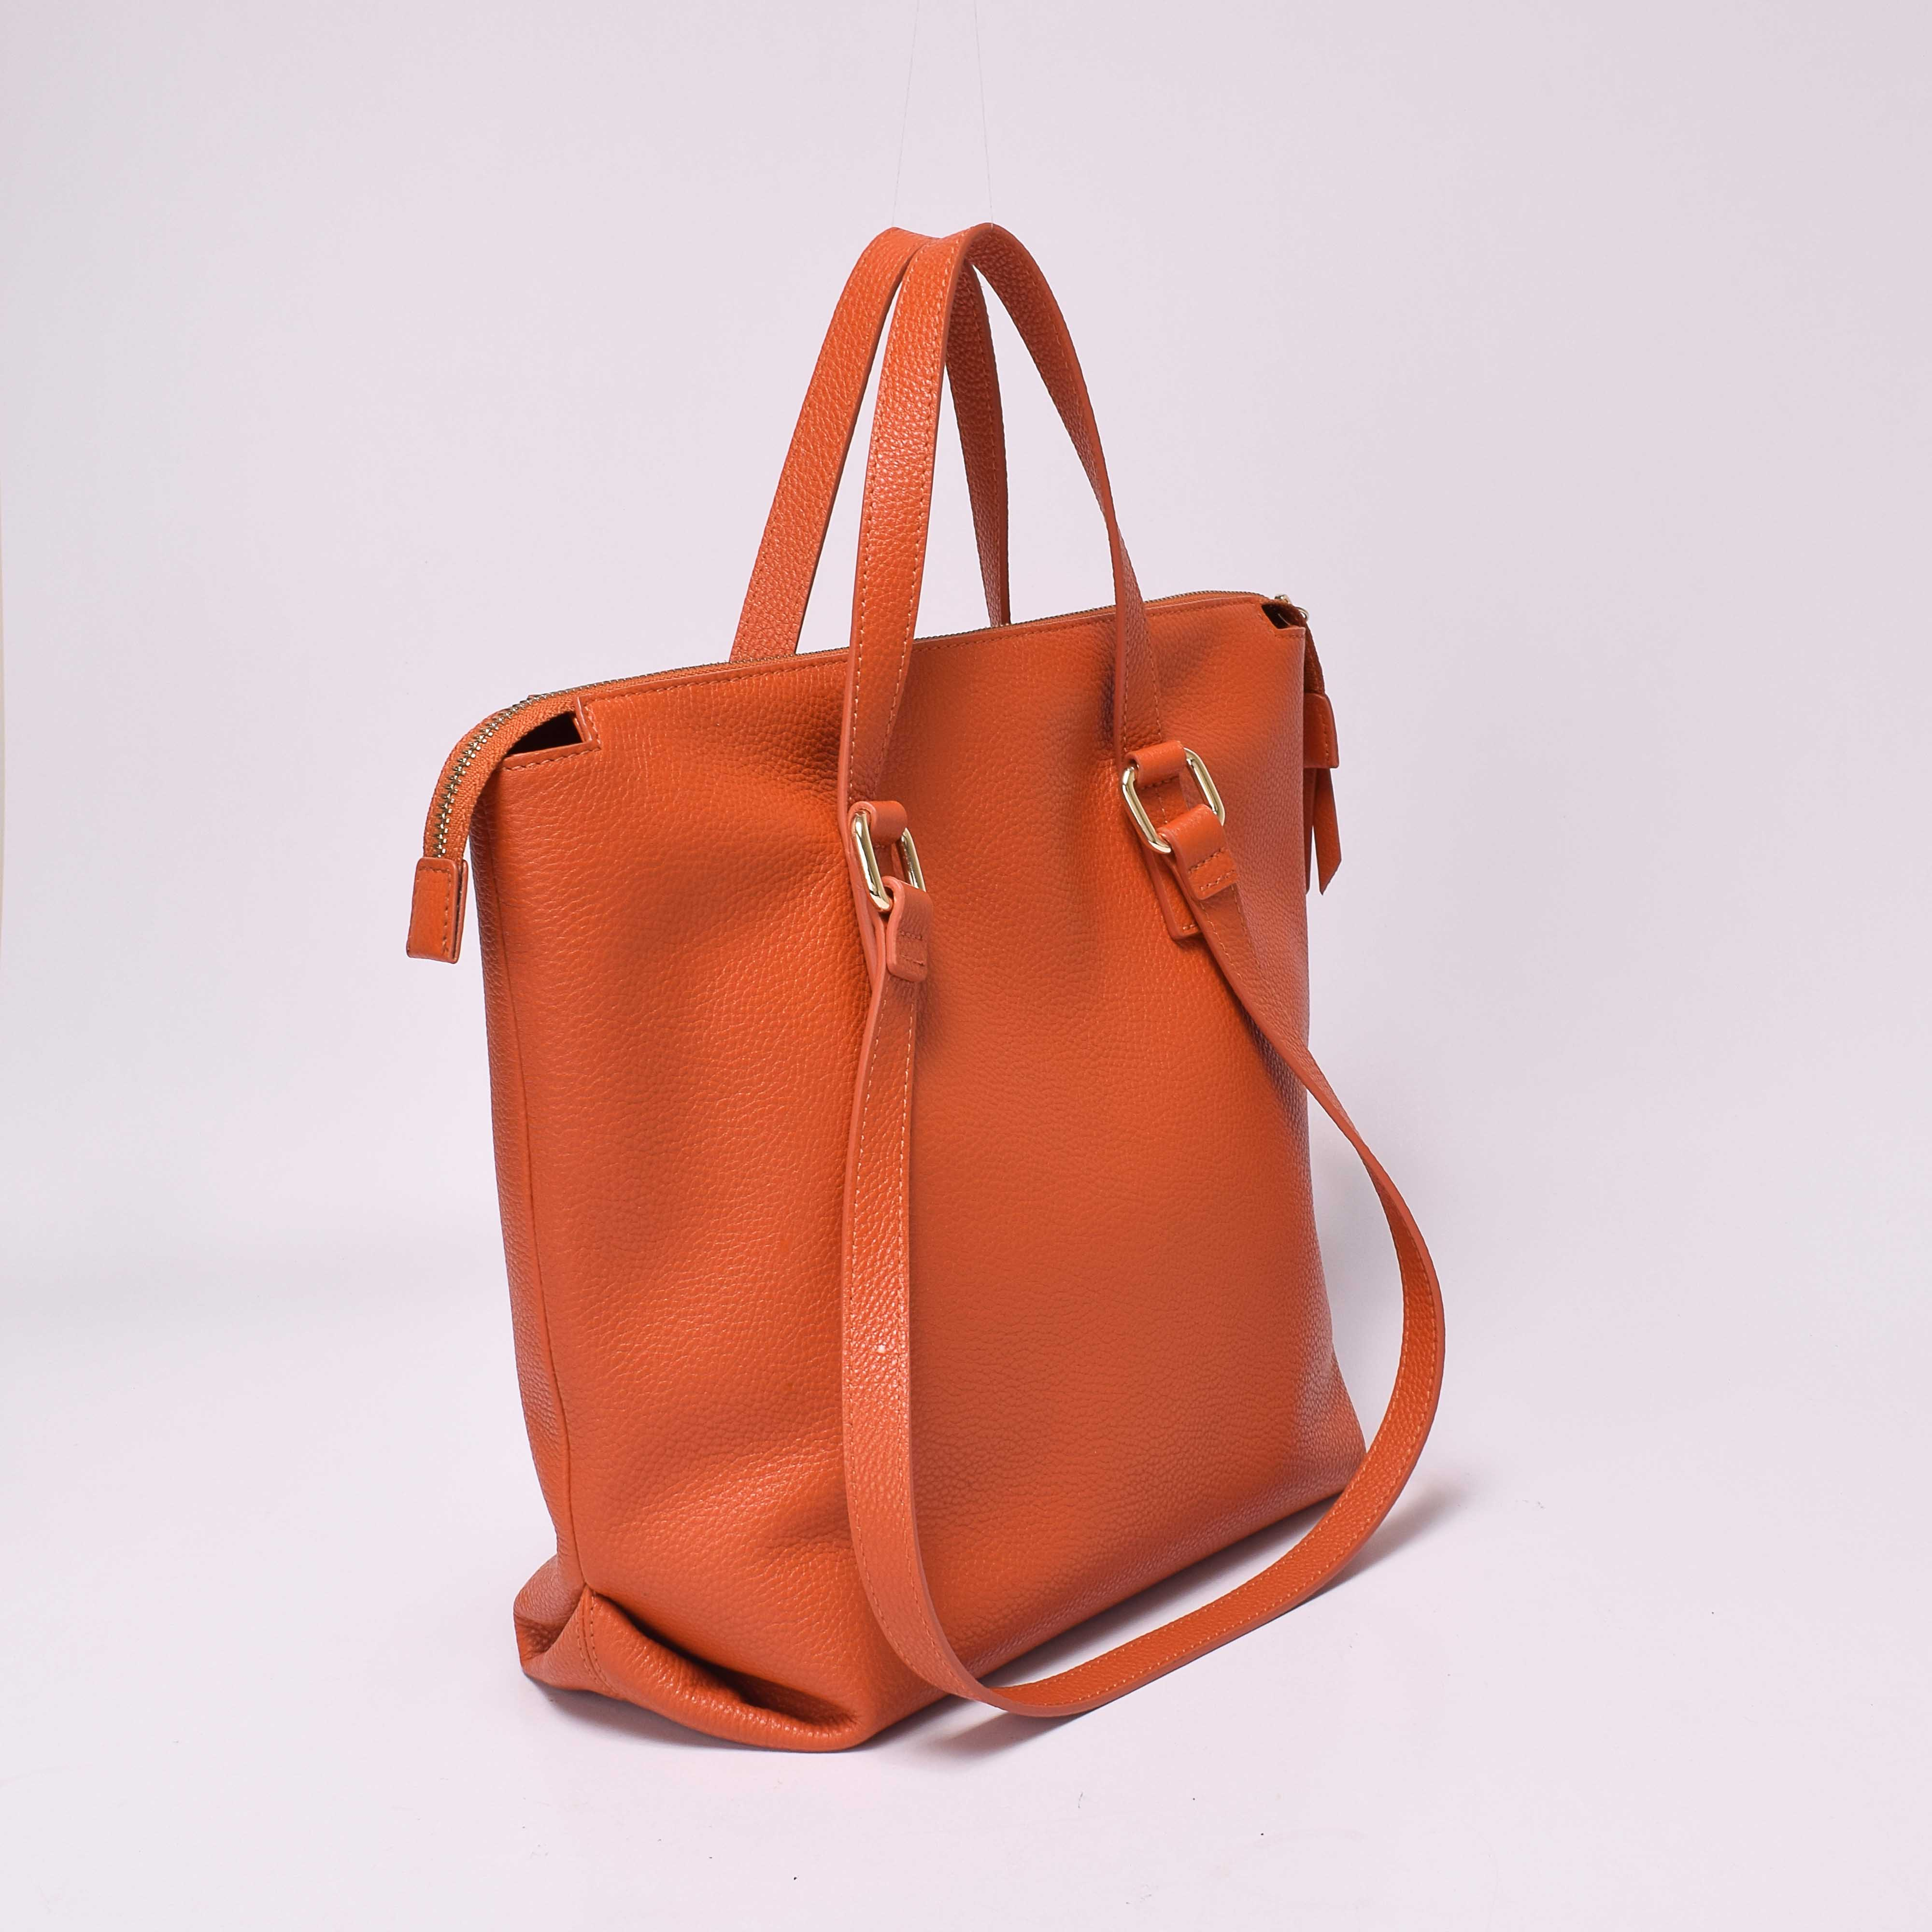 Sanlly durable tote bags and purses get quote for shopping-1